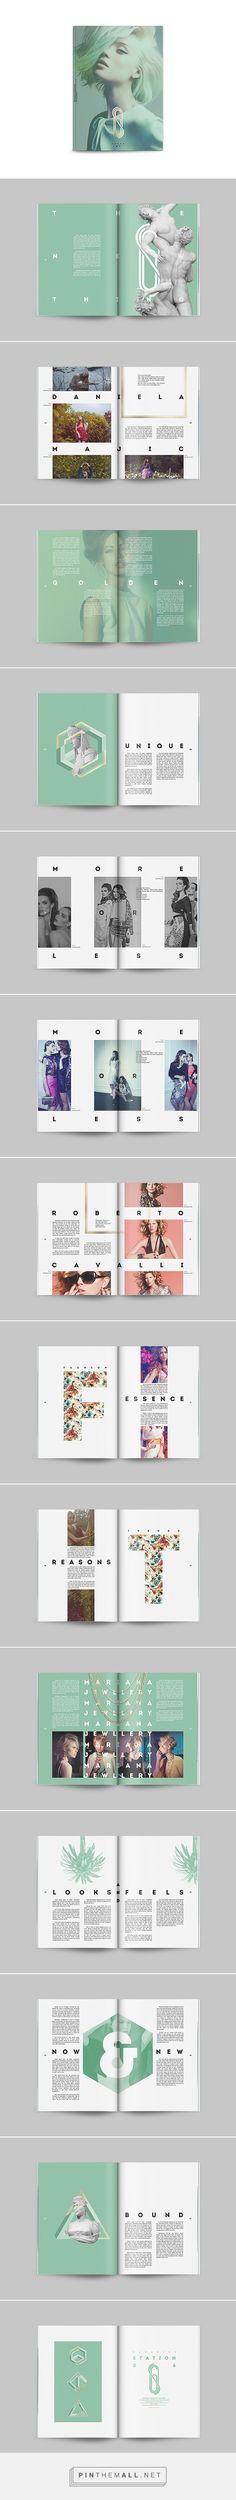 station06 Magazine on Behance... - a grouped images picture - Pin Them All